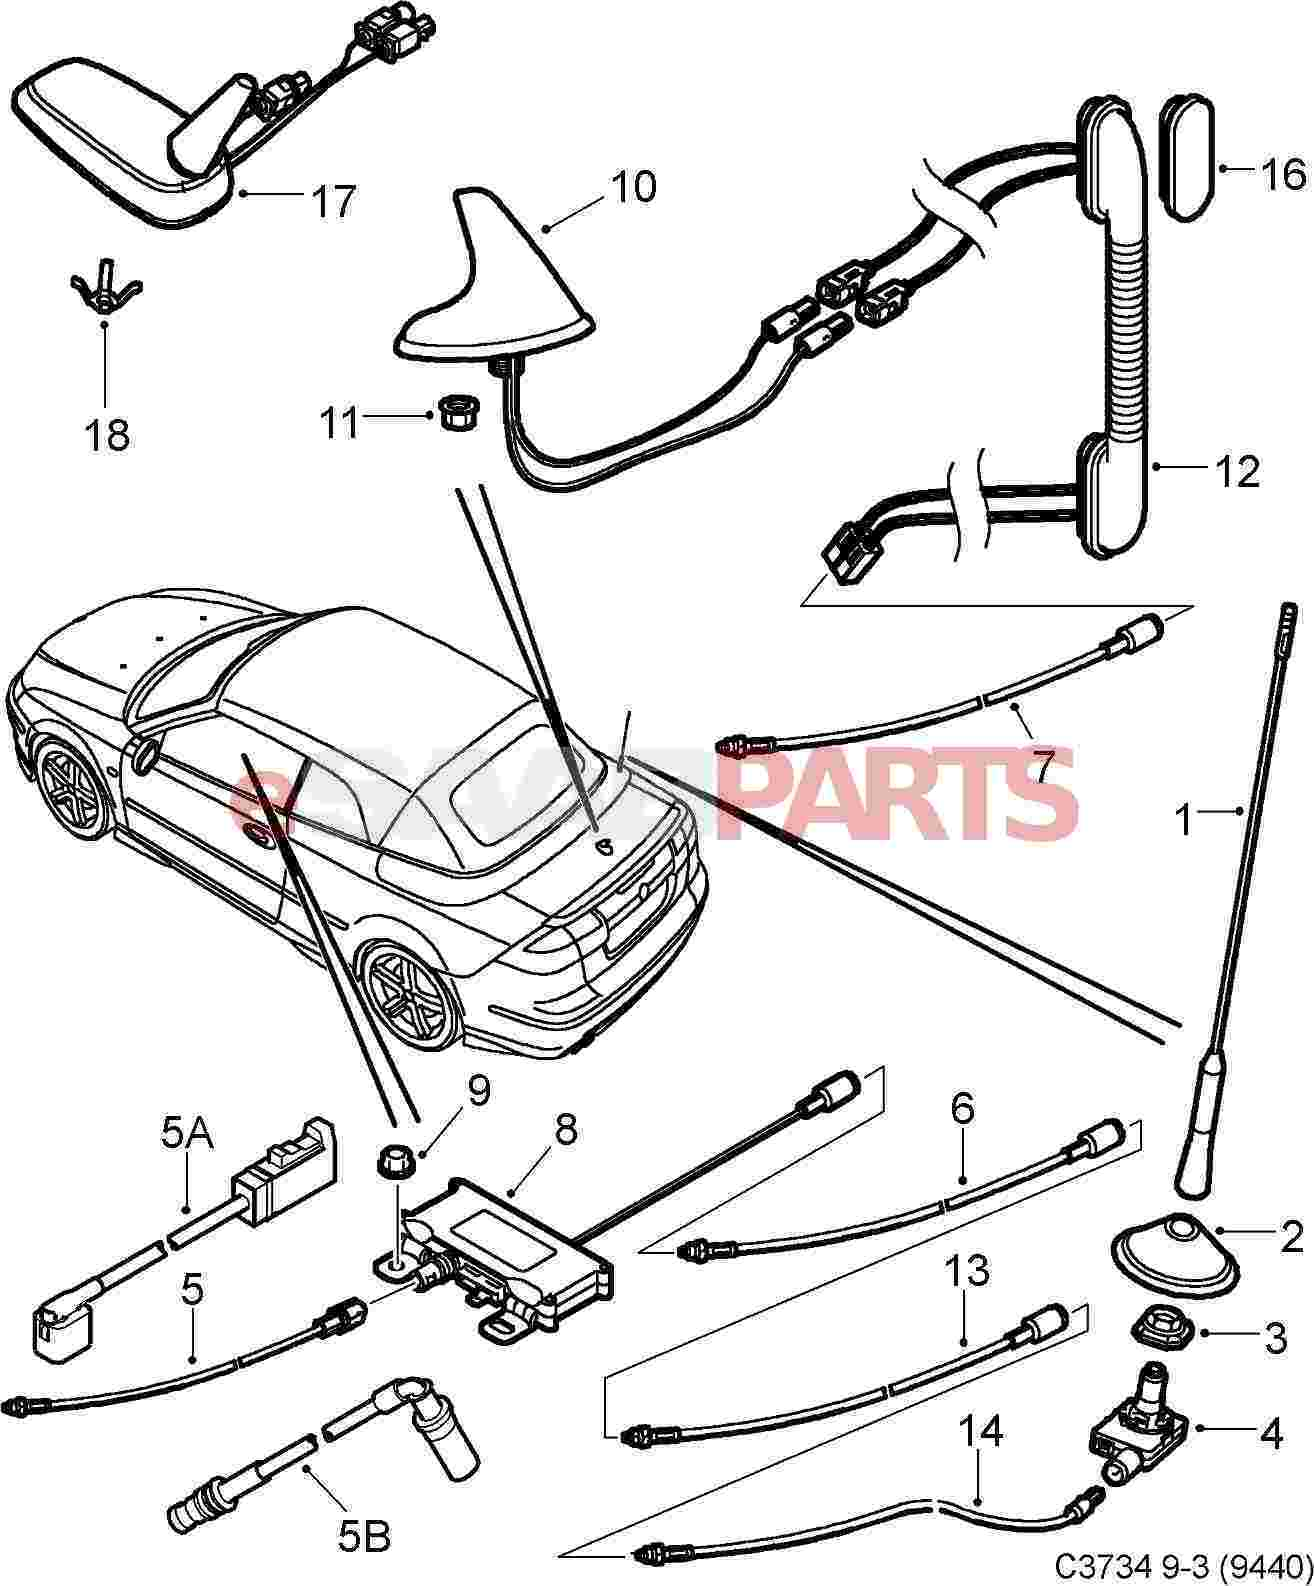 1992 subaru svx fuse box diagram  subaru  auto wiring diagram